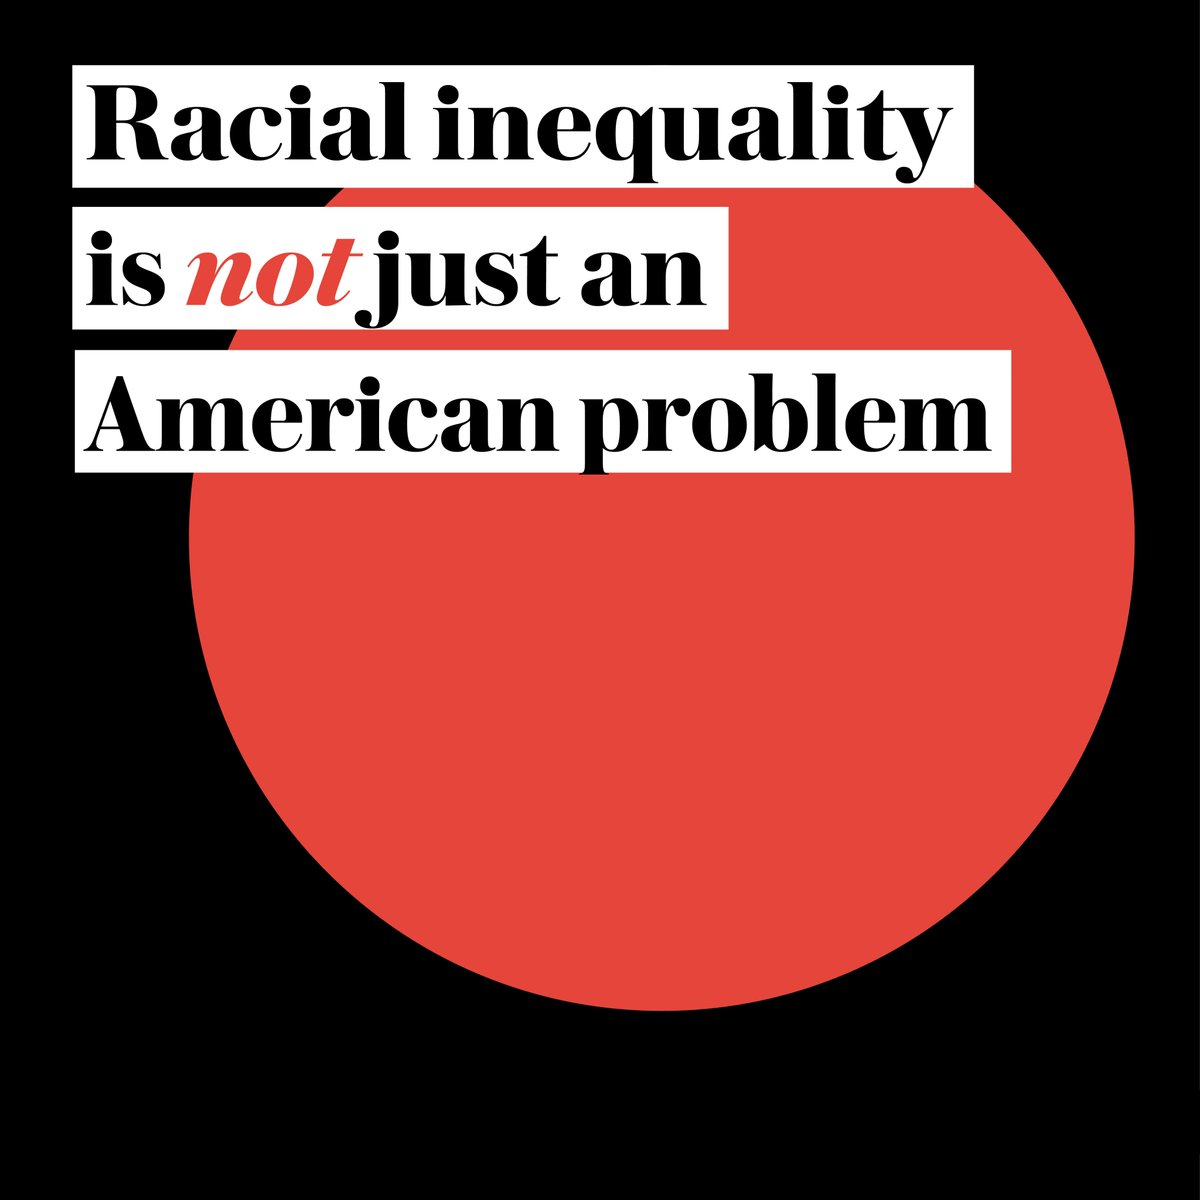 Britains own problem with racial inequality *a thread* While the shocking scenes of police brutality in the United States arent often mirrored here, a less overt undercurrent of inequality flows through society. telegraph.co.uk/news/2020/06/0… #BlackLivesMatter #BlackLivesMatterUK